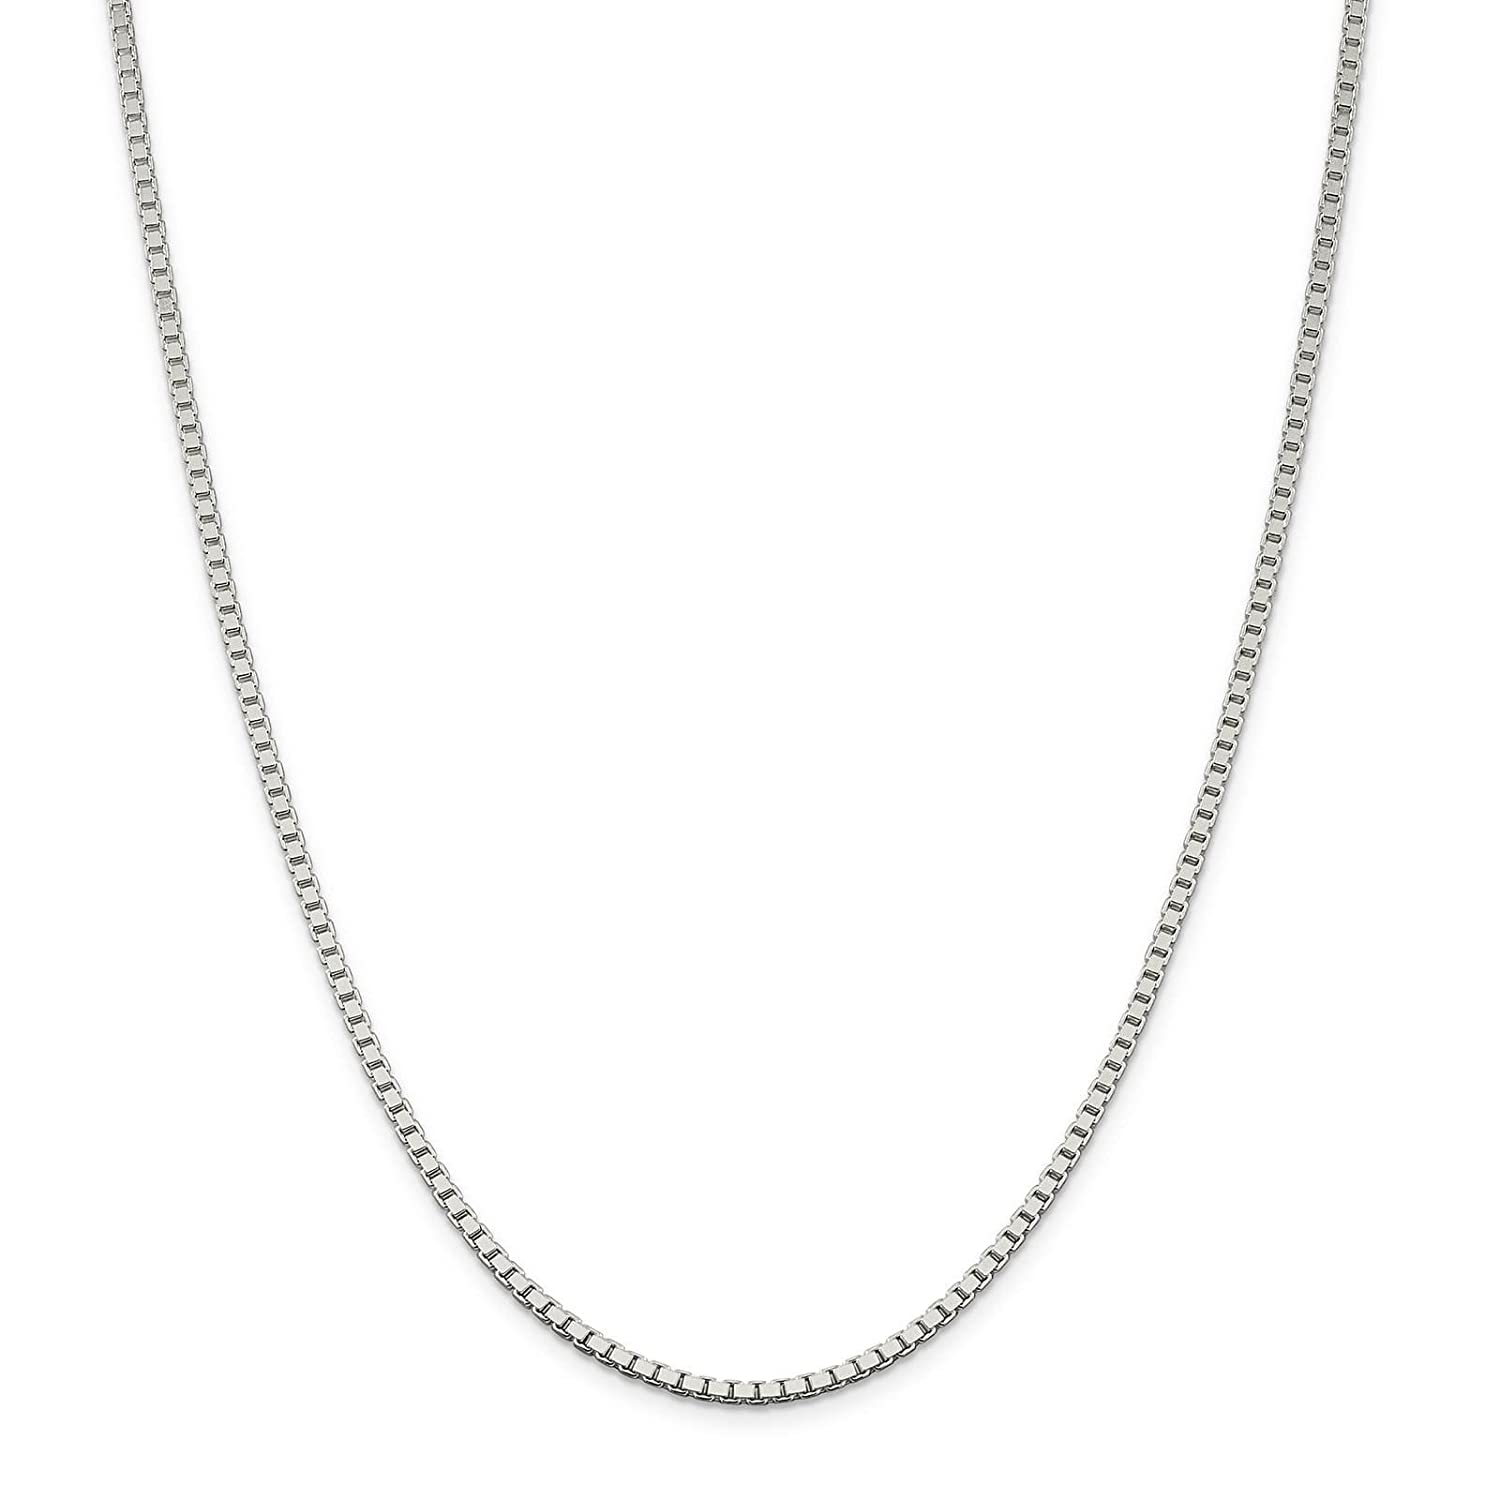 925 Sterling Silver Solid 2.5mm Polished Box Chain Necklace 7-30